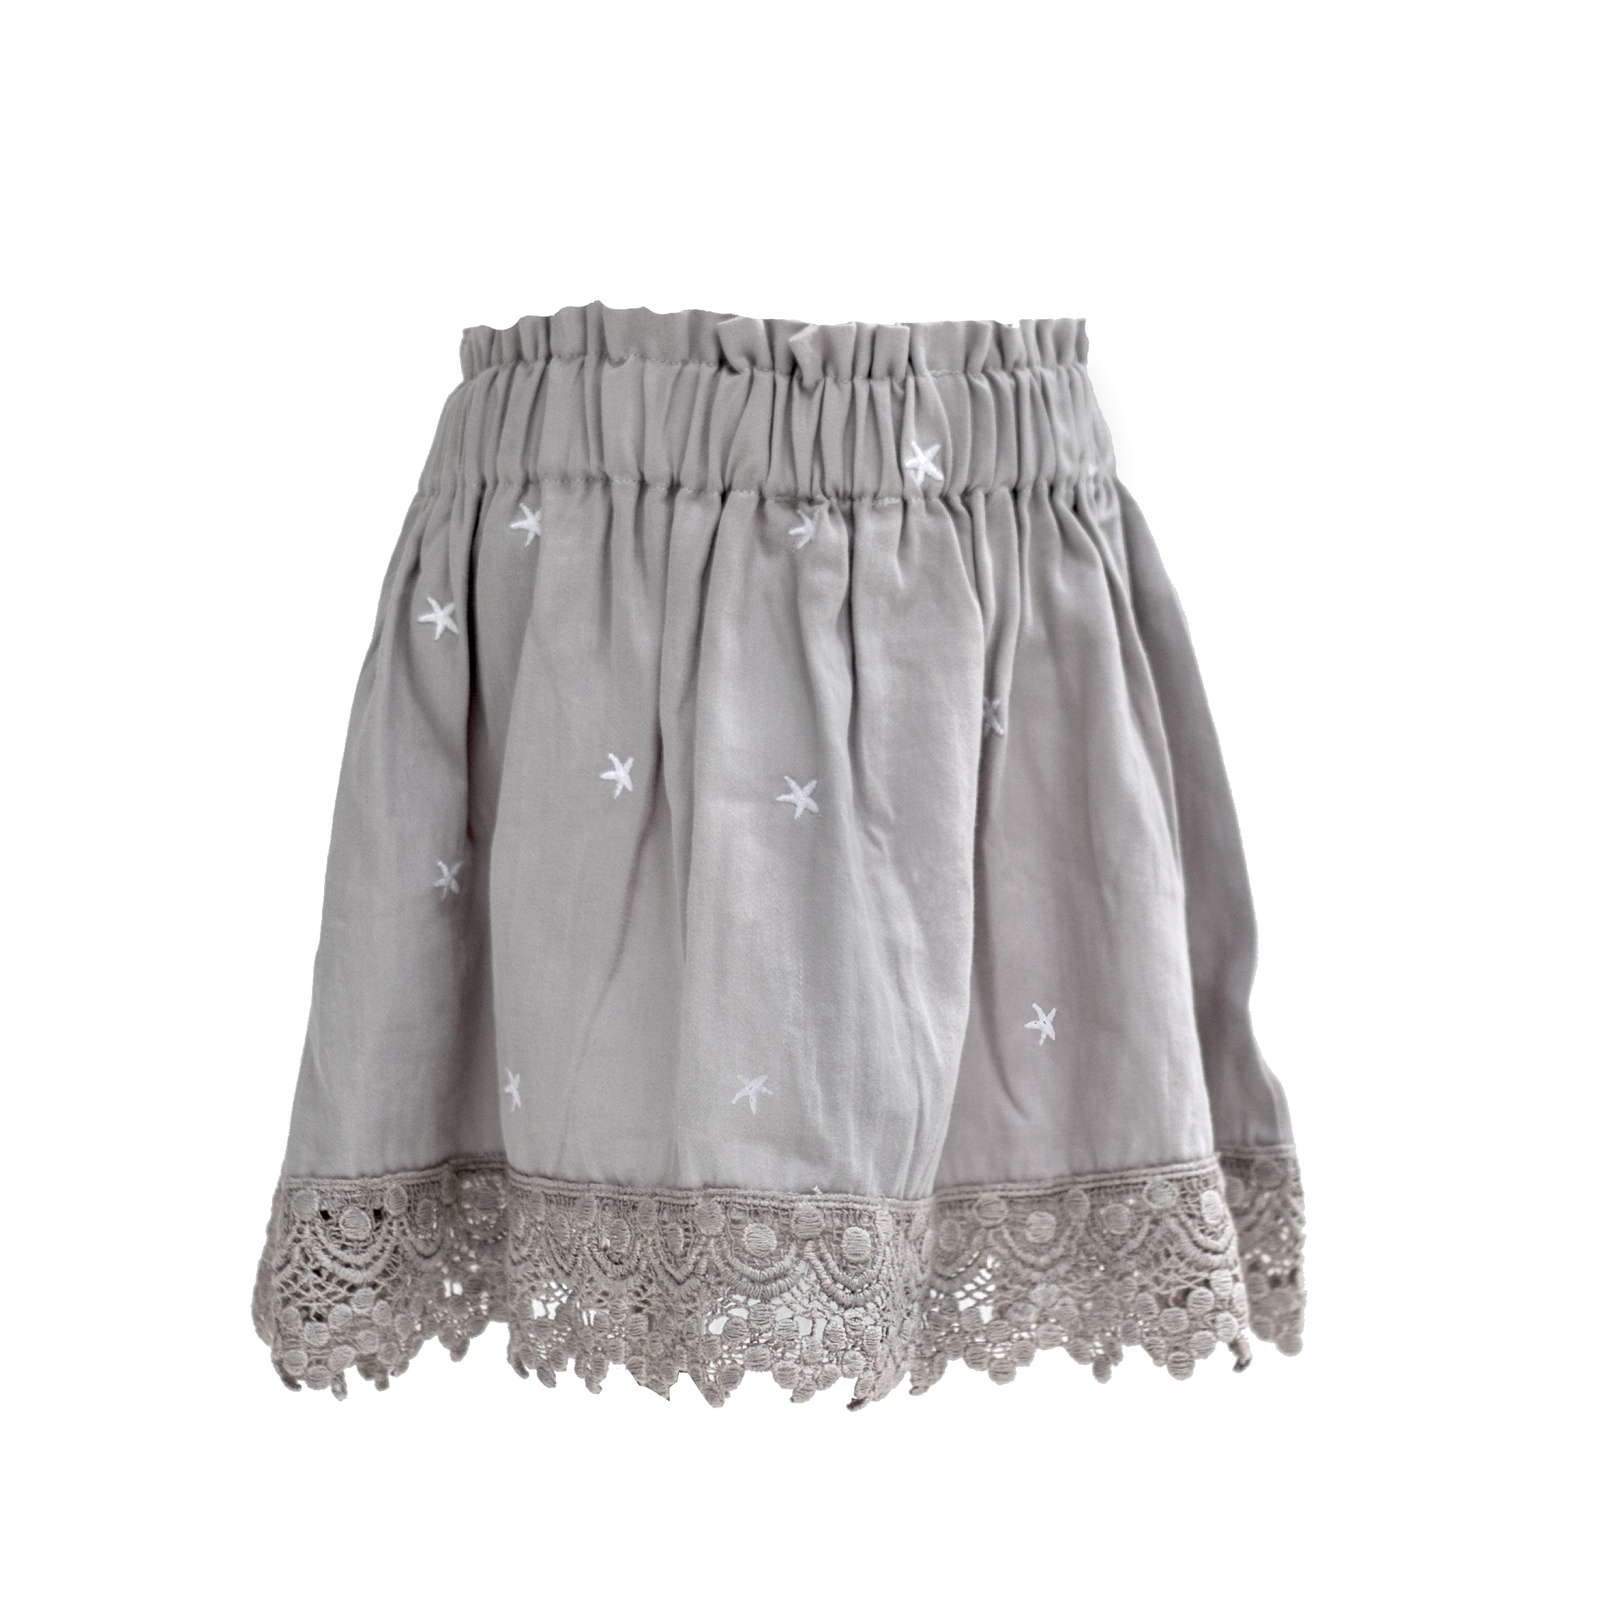 GREY STAR EMBROIDERED EVIE SKIRT